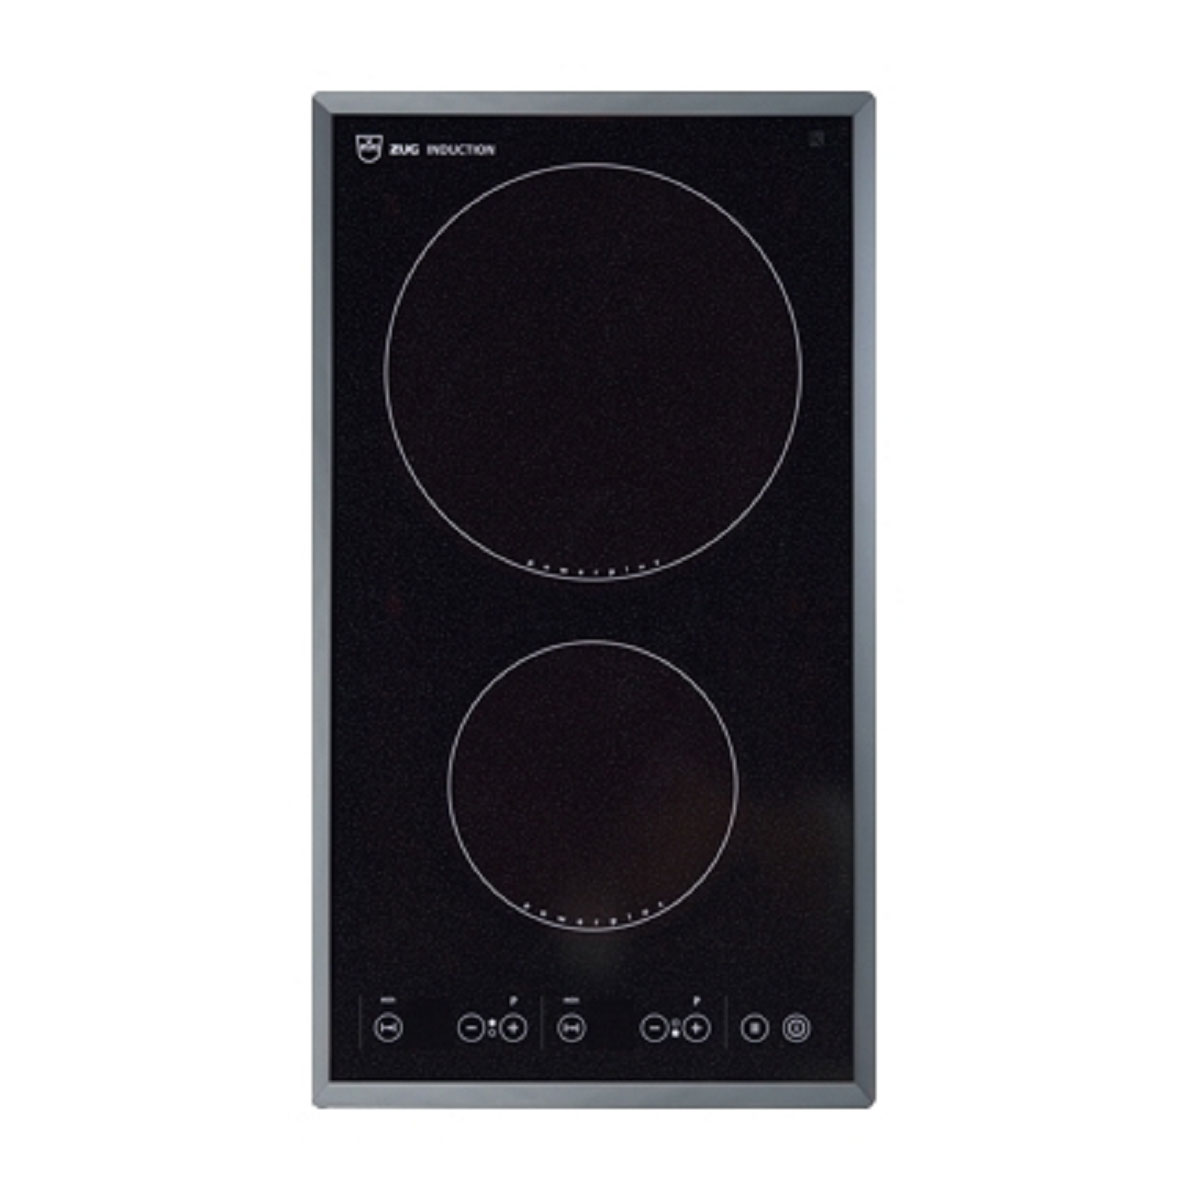 V-ZUG Induction Cooktops GK26TIF